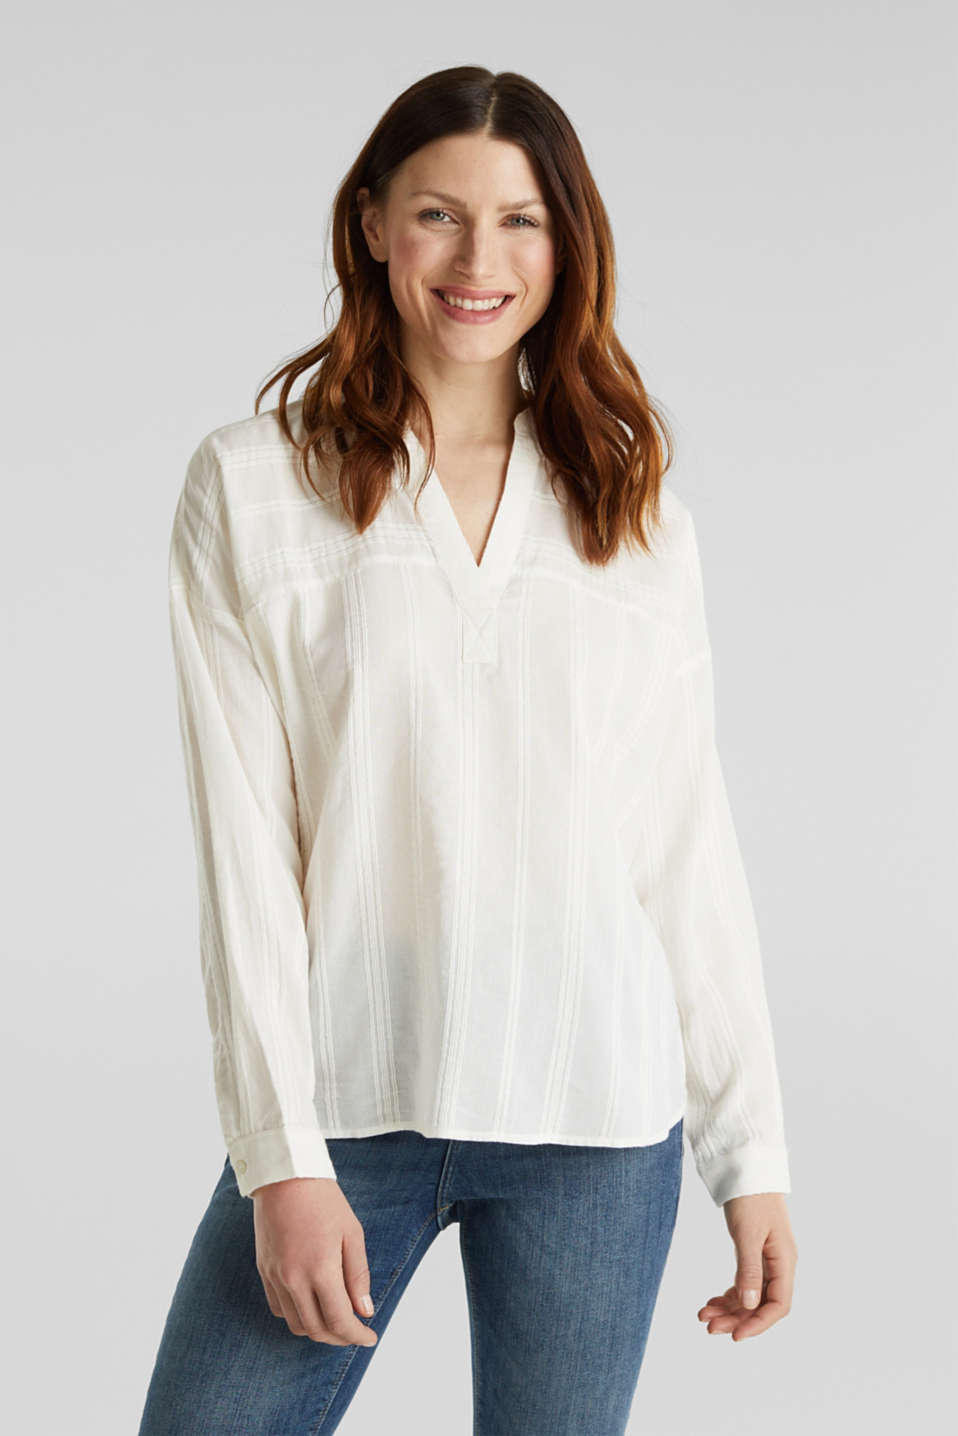 Esprit - Textured blouse in 100% cotton